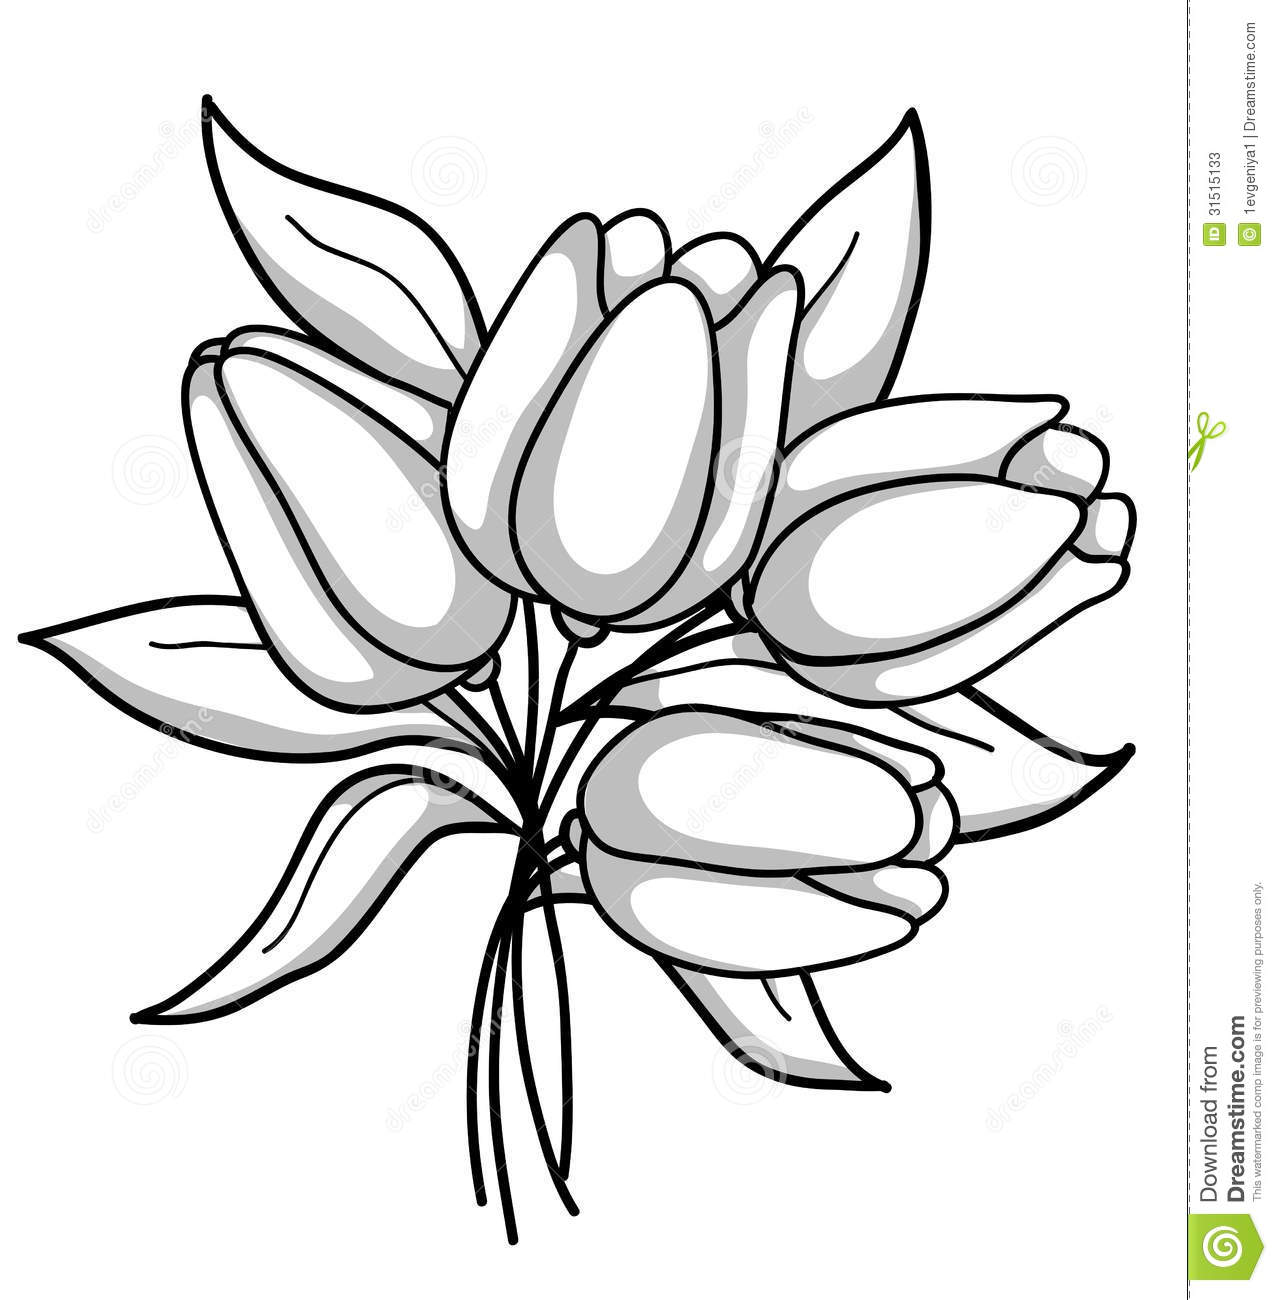 1277x1300 Clipart Tulip Black And White Collection